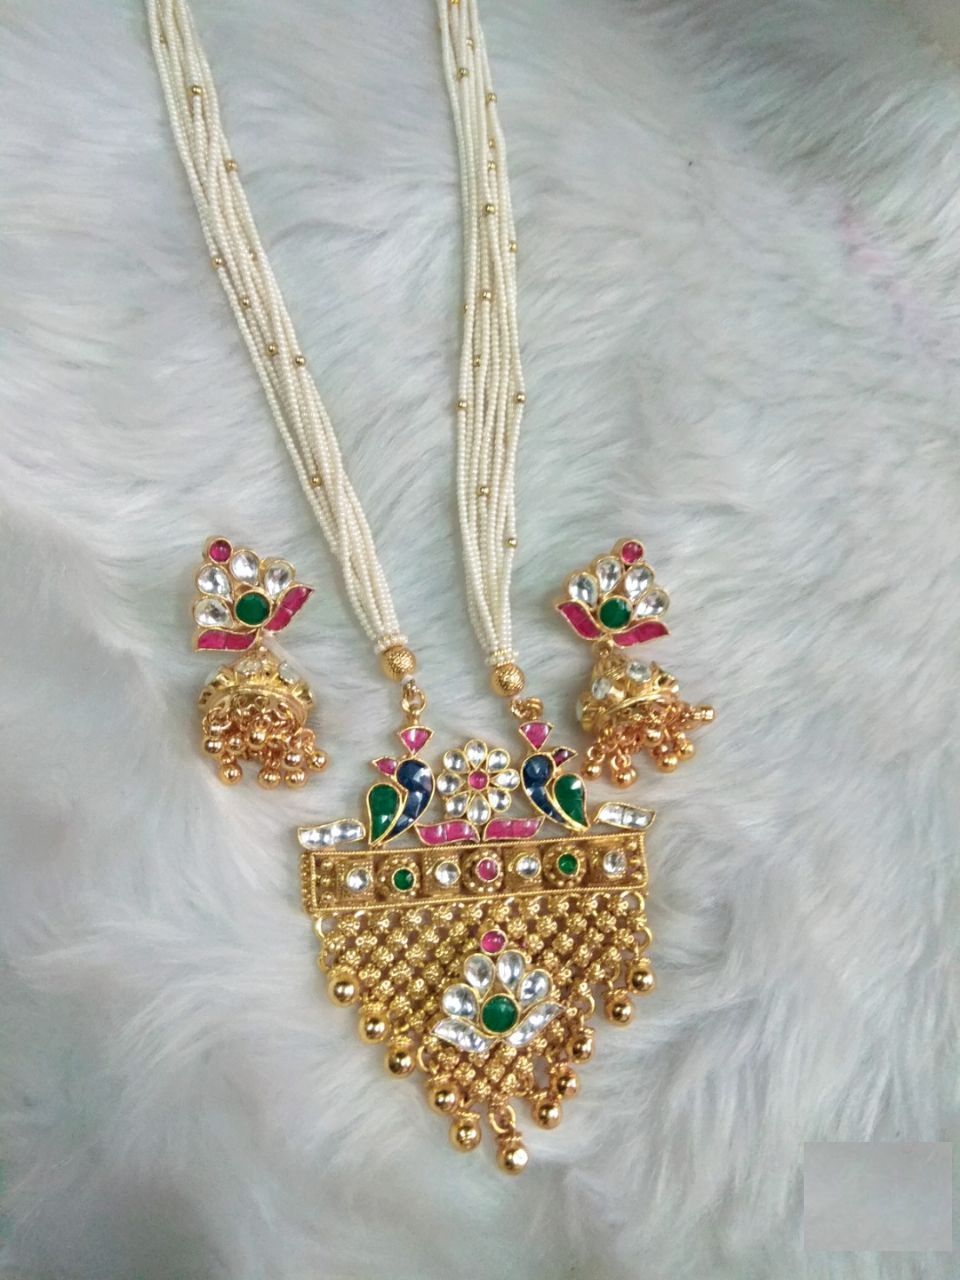 Ethnic milky bonds in twirling flora and fauna motif pendant